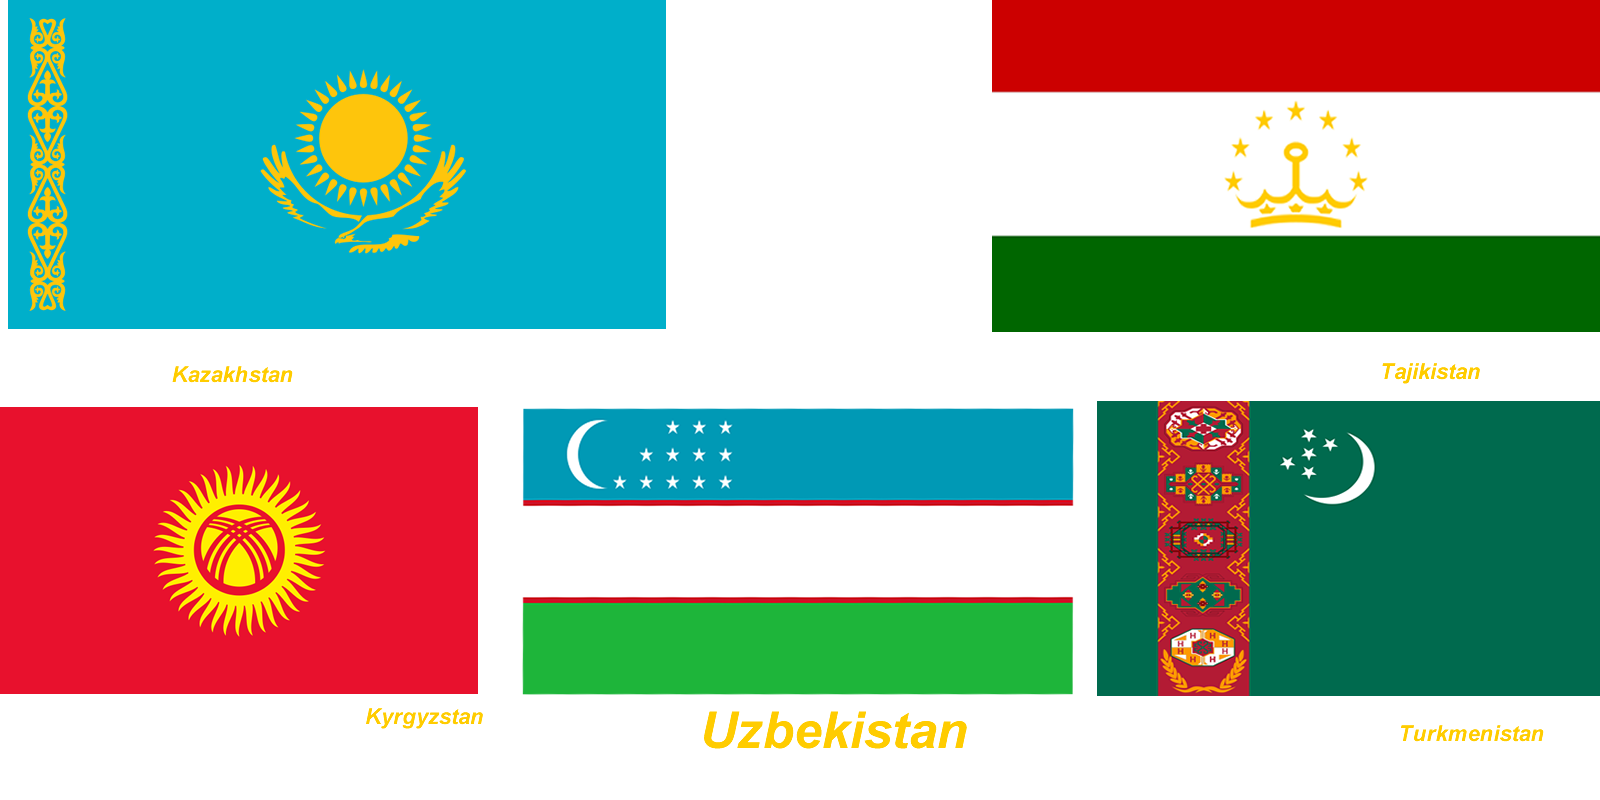 central asian countres flags NYC3000